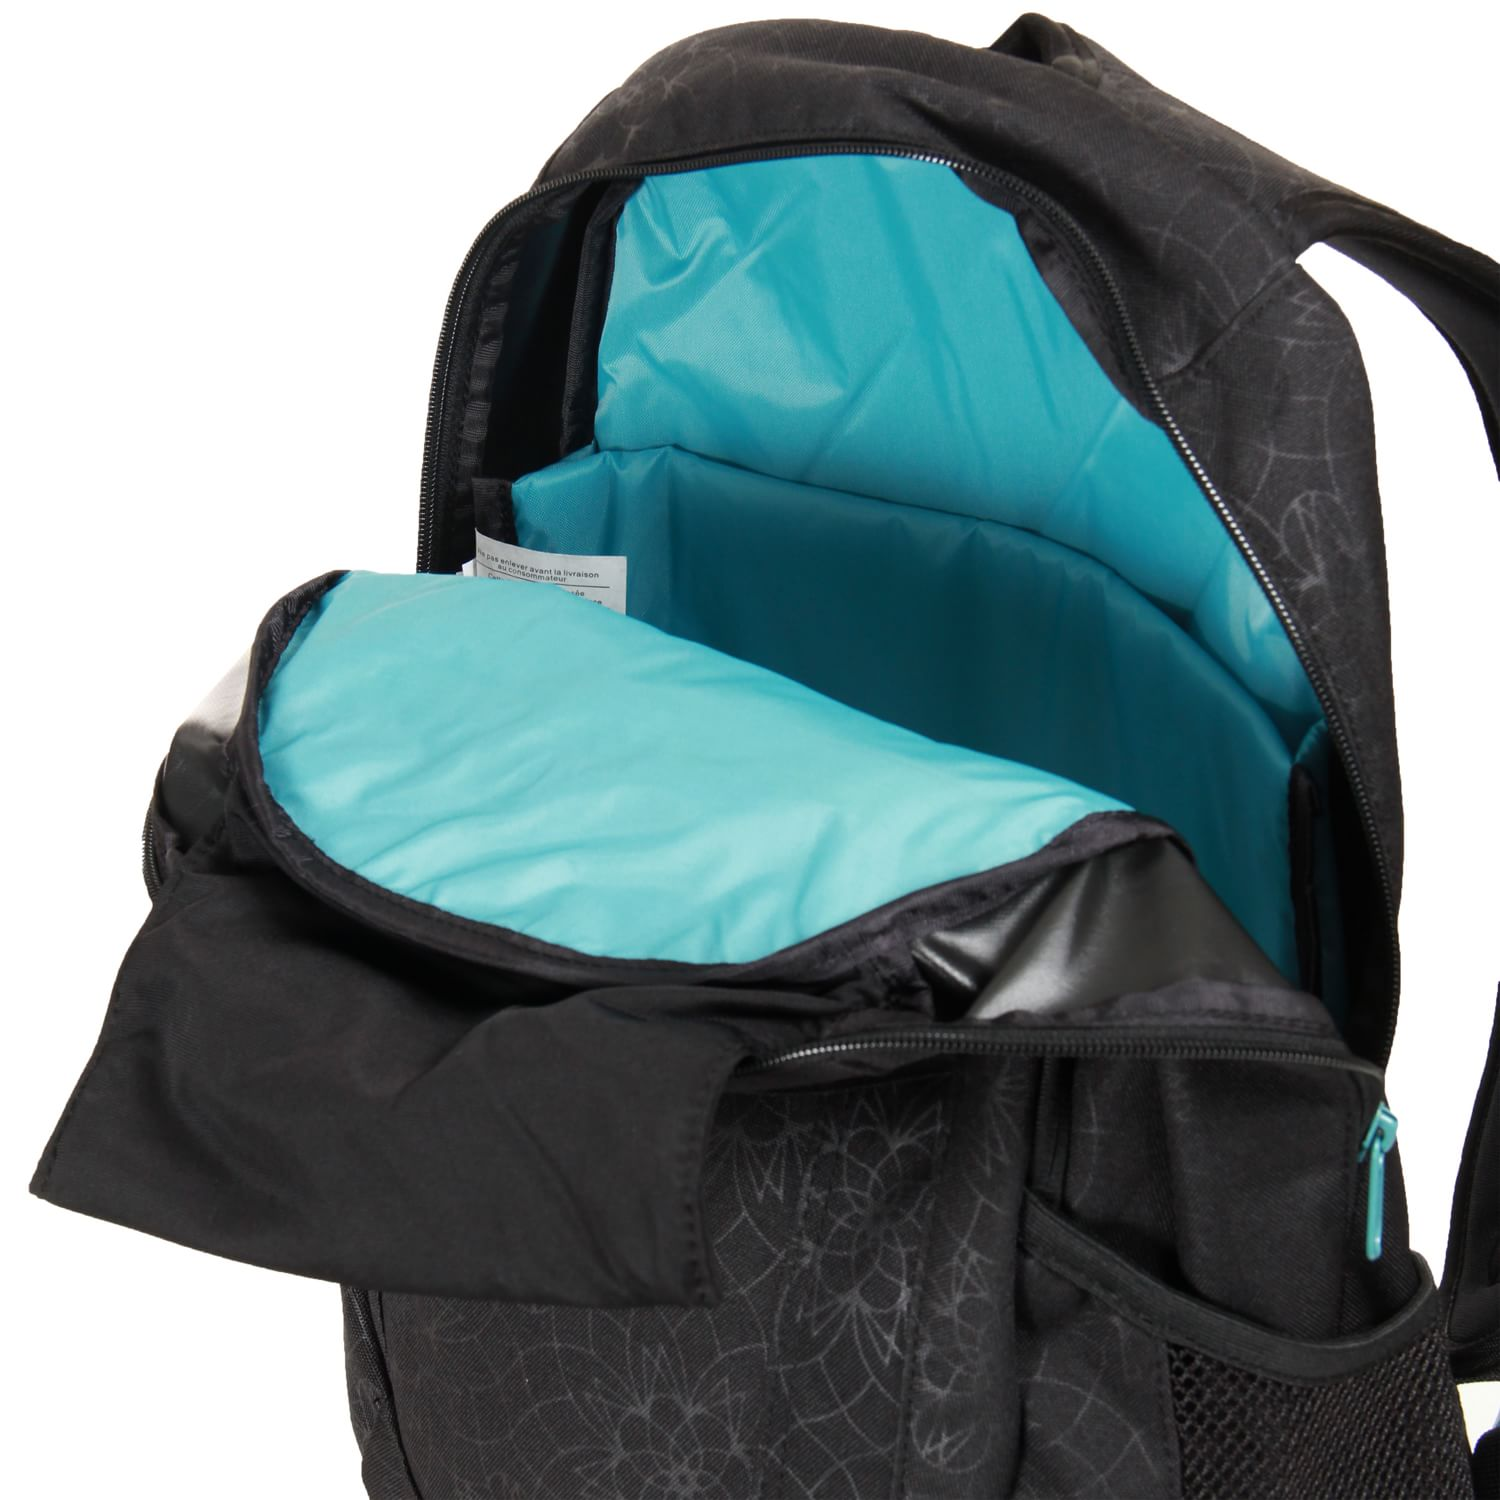 Wonderful Dakine Garden Backpack LuBxmz16